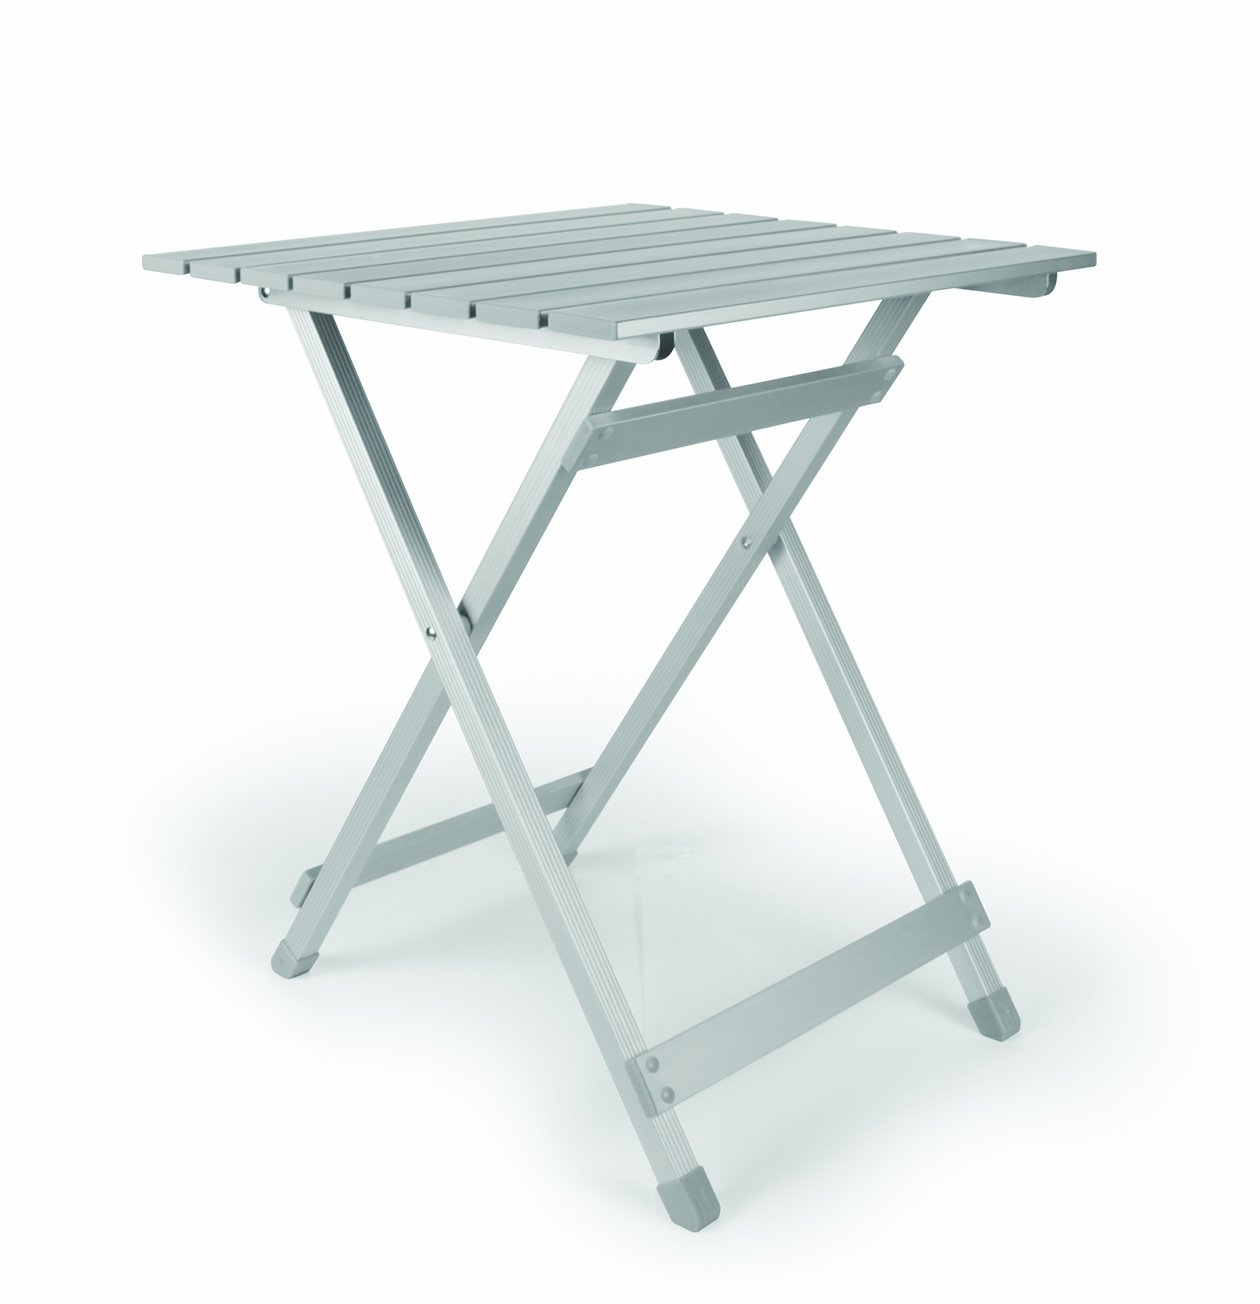 Camco 51891 Aluminum Fold-Away Side Table - Large by Camco